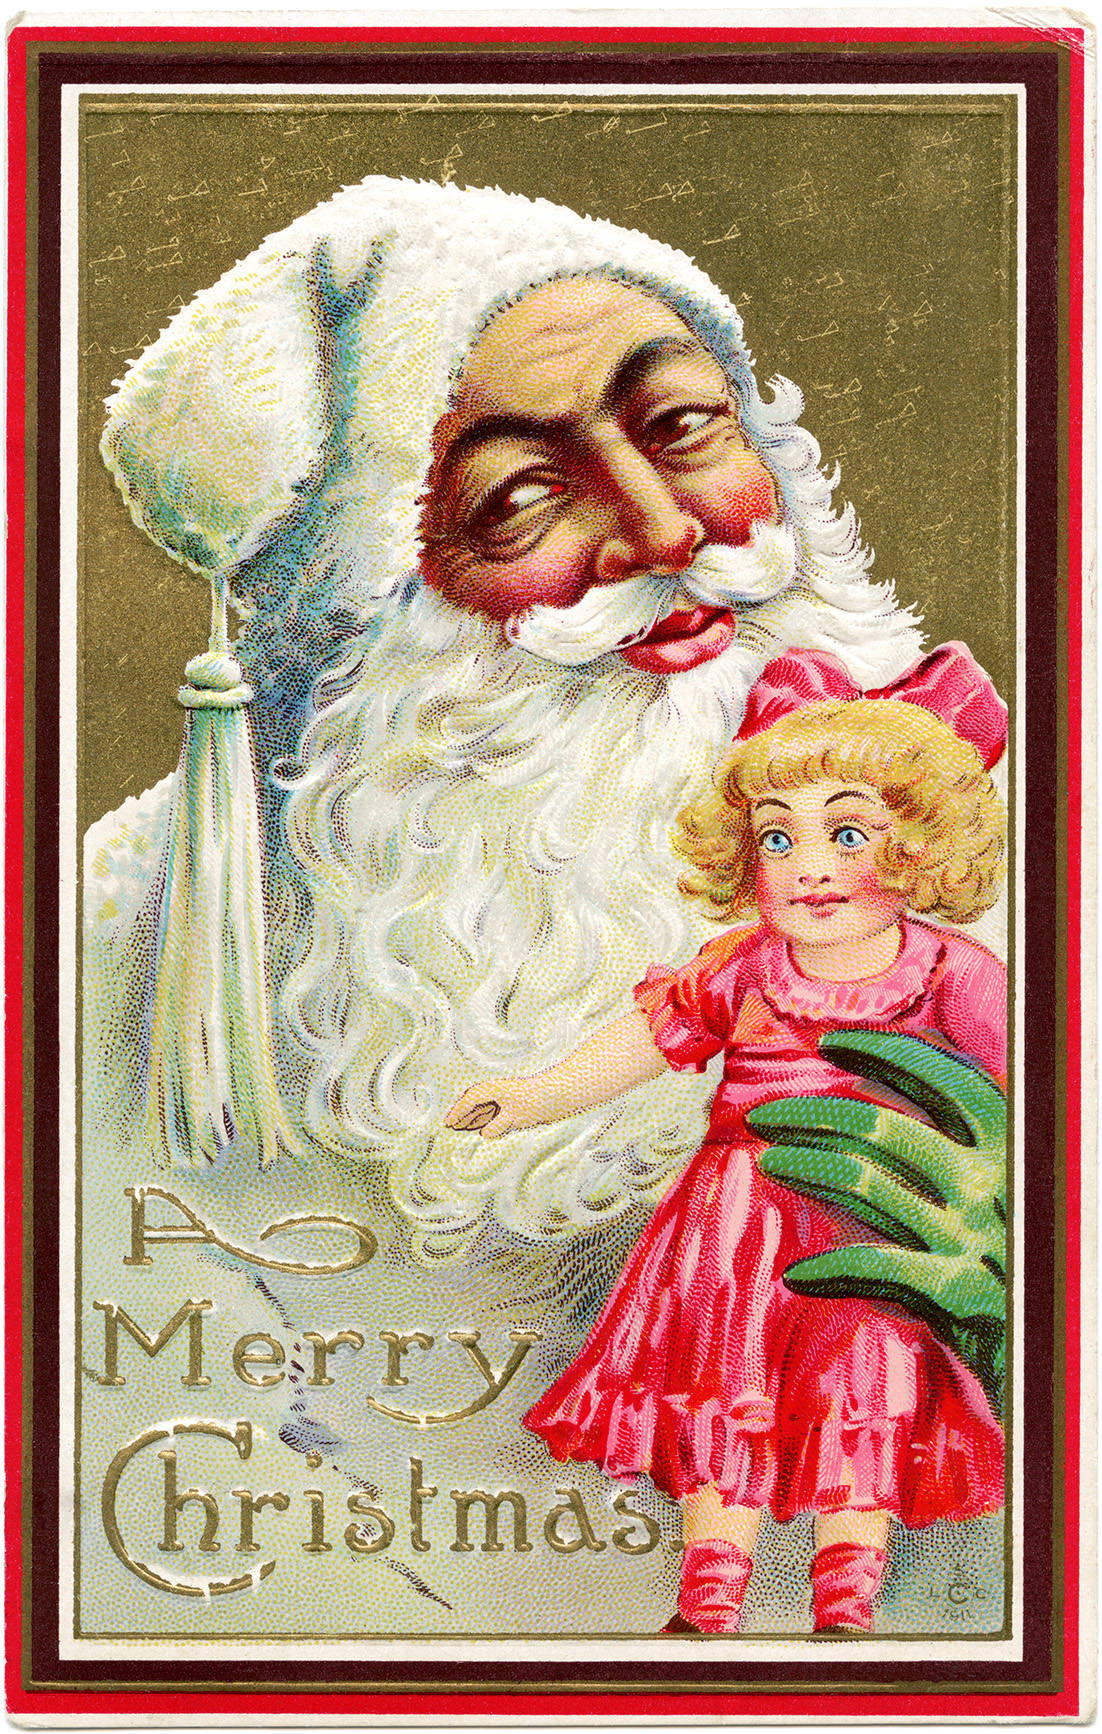 Santa doll postcard 1911, vintage Christmas clip art, antique santa illustration, santa in white clipart, santa claus holding doll graphics